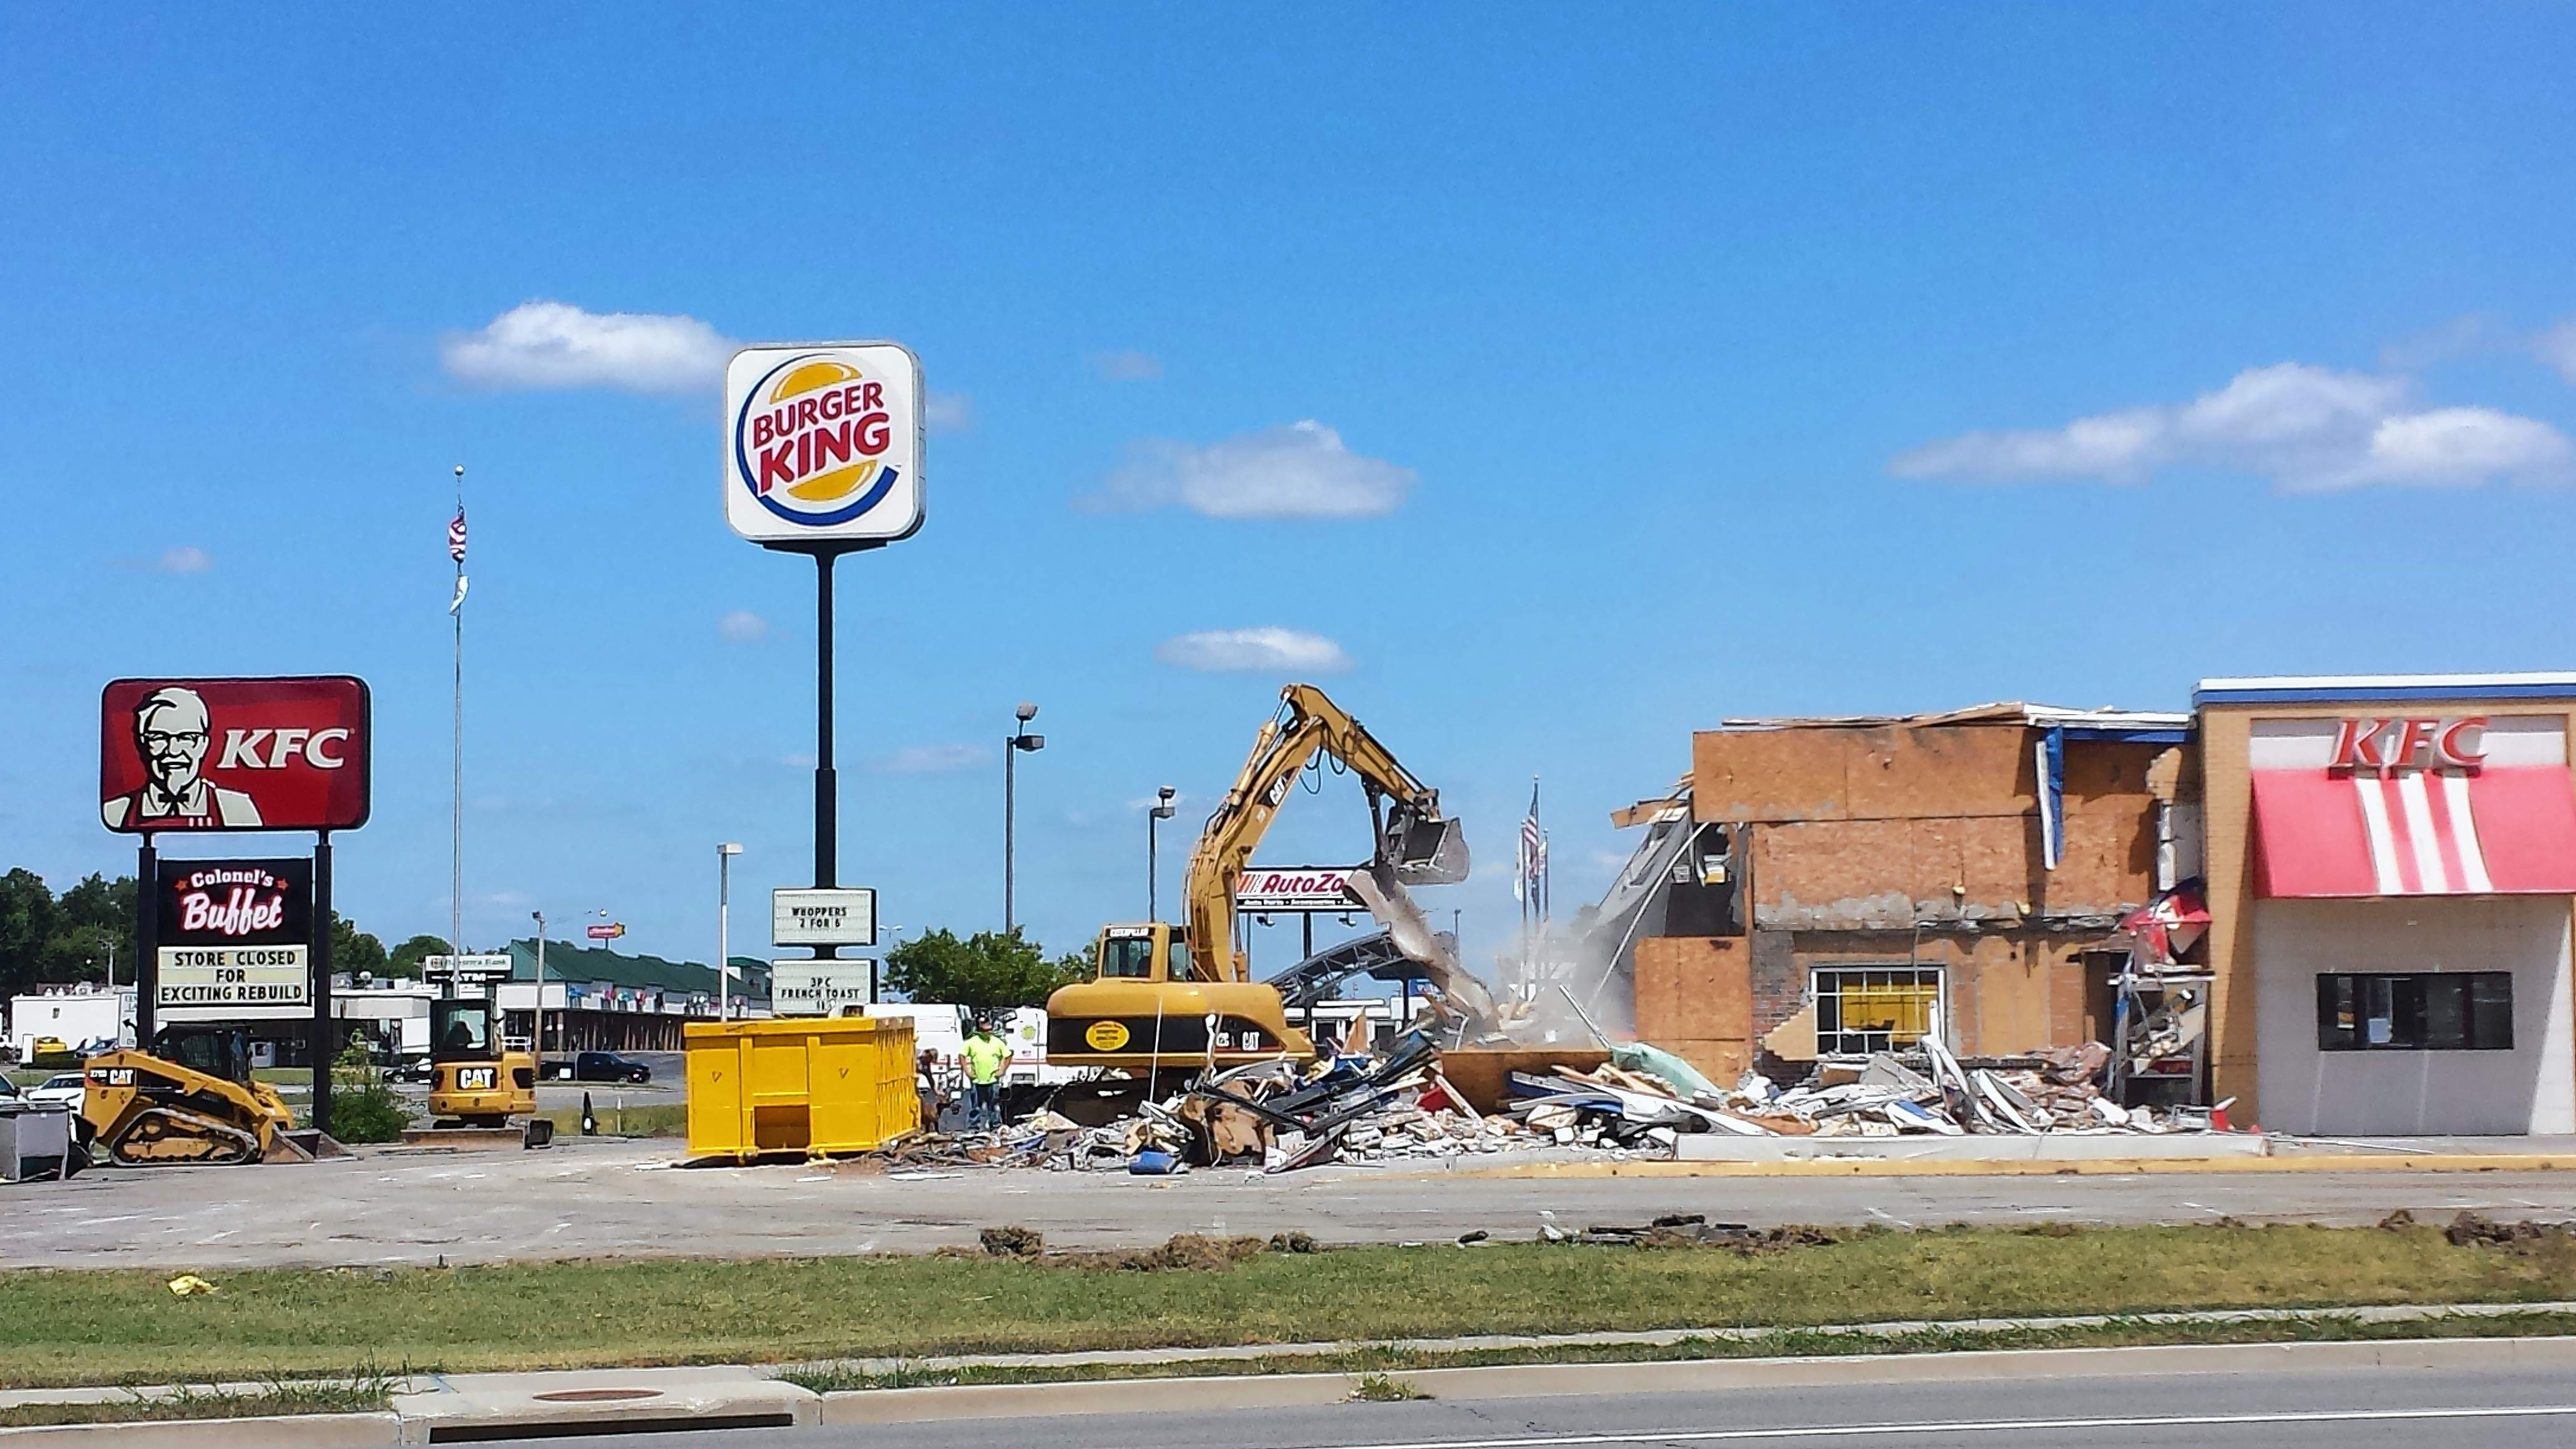 Demolition of the KFC restaurant in Harrisburg began last week, and continues this week. A new KFC will be built in its place.